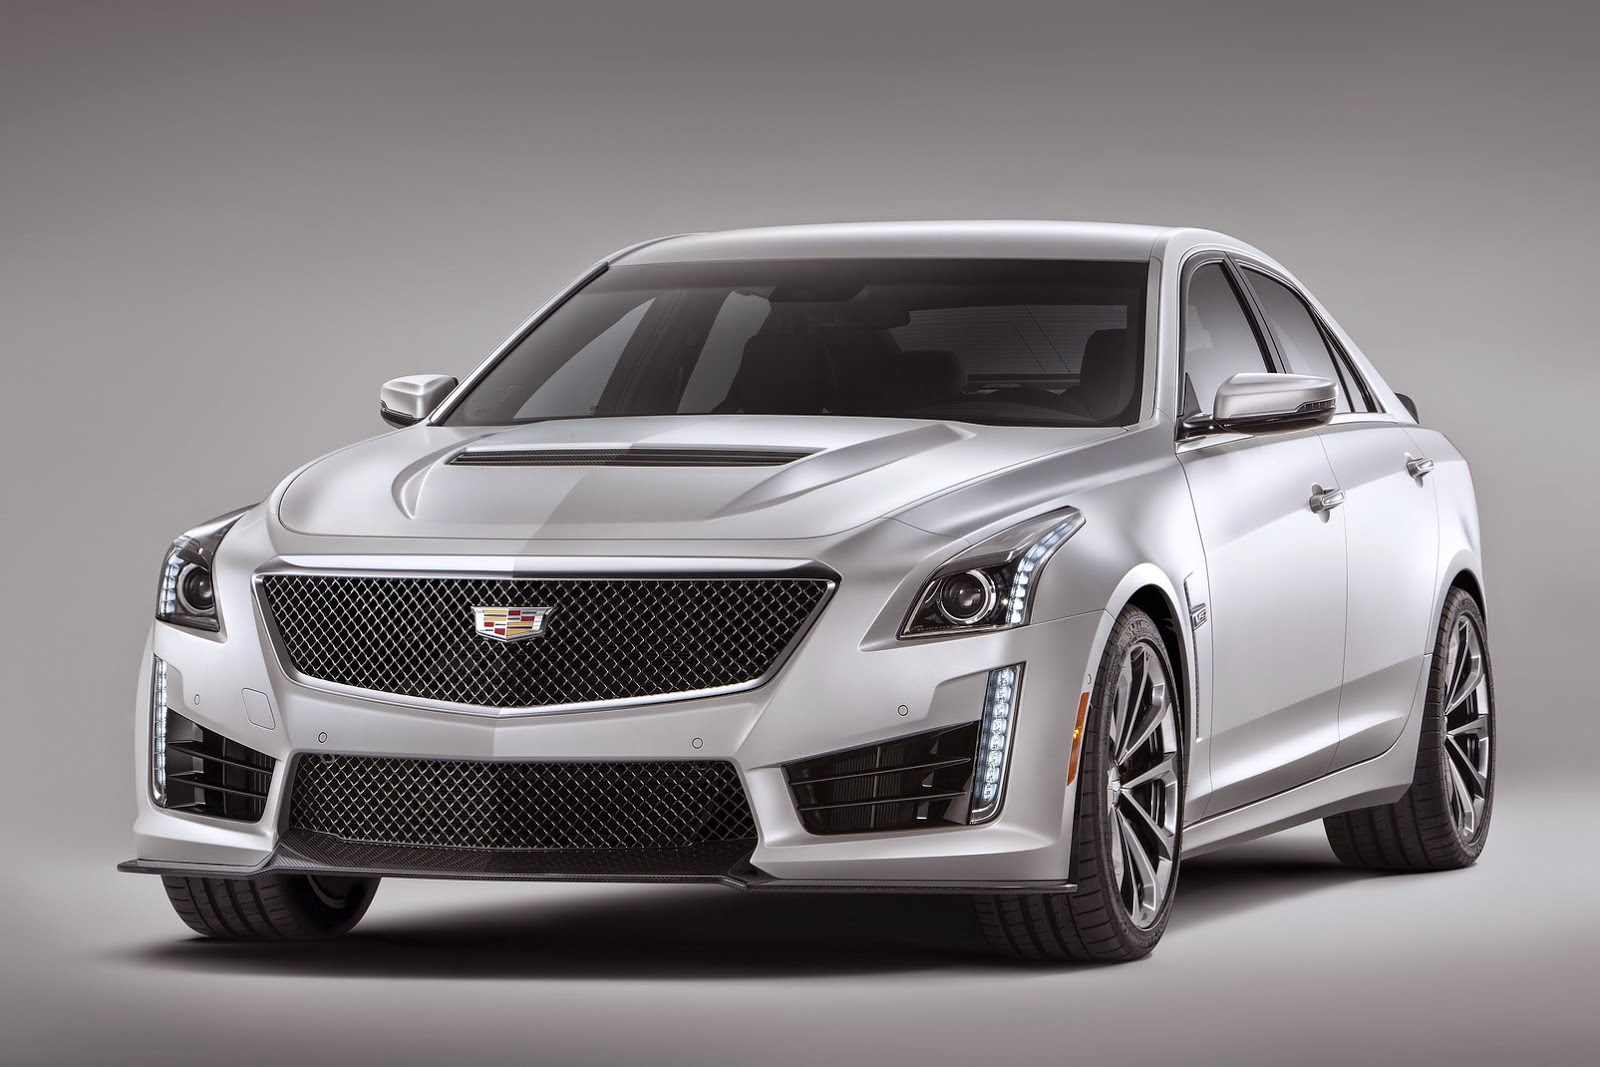 Ats Vs Cts >> Super Sedan Showdown: 2016 CTS-V vs. Charger Hellcat vs ...